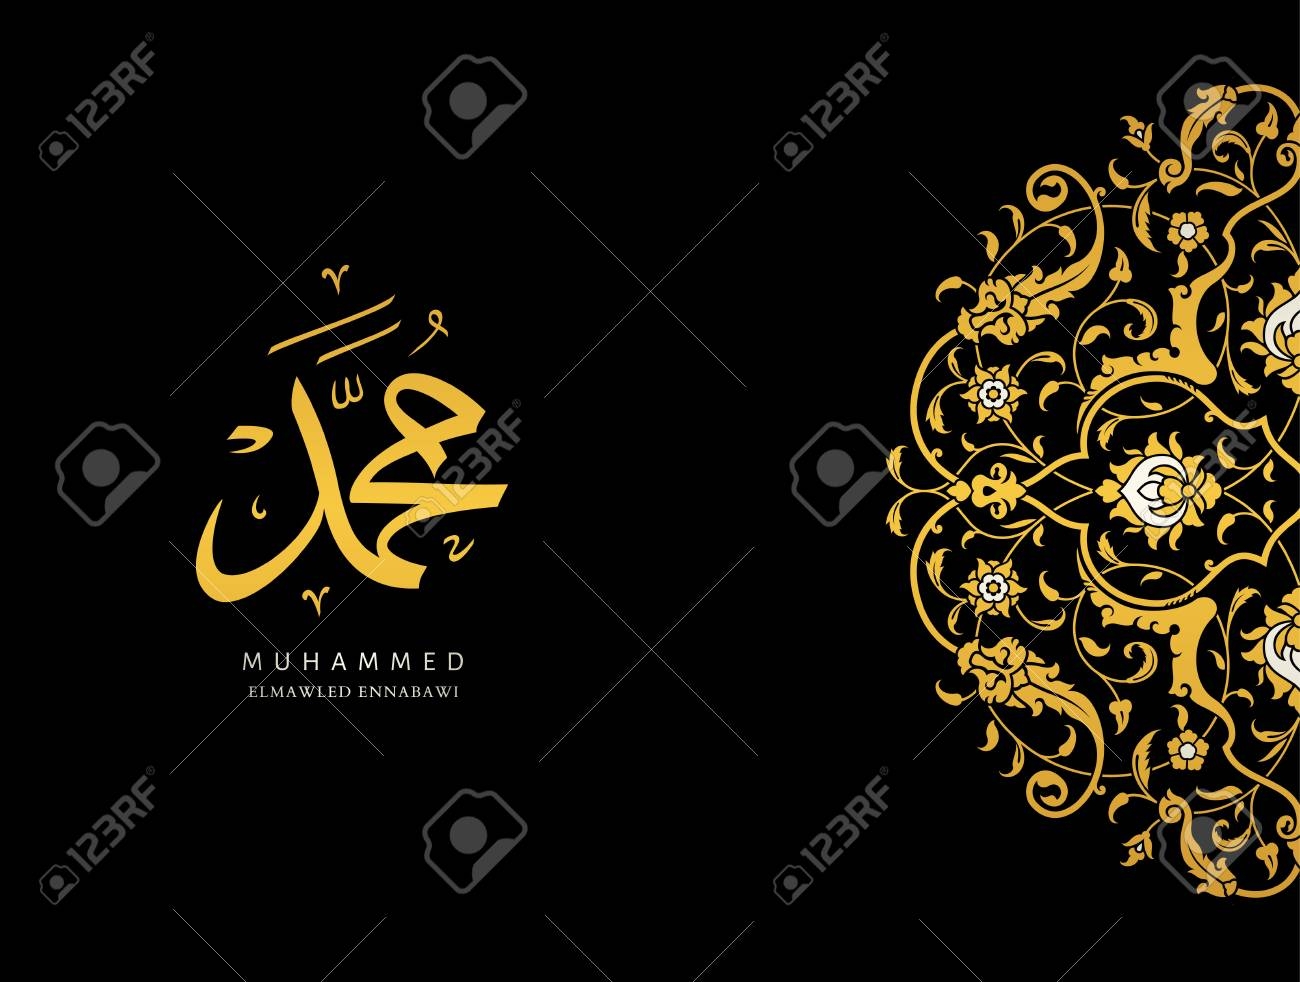 Vector design Mawlid An Nabi - birthday of the prophet Muhammad. The arabic script means ''the birthday of Muhammed the prophet'' Based on Morocco background. - 90757098